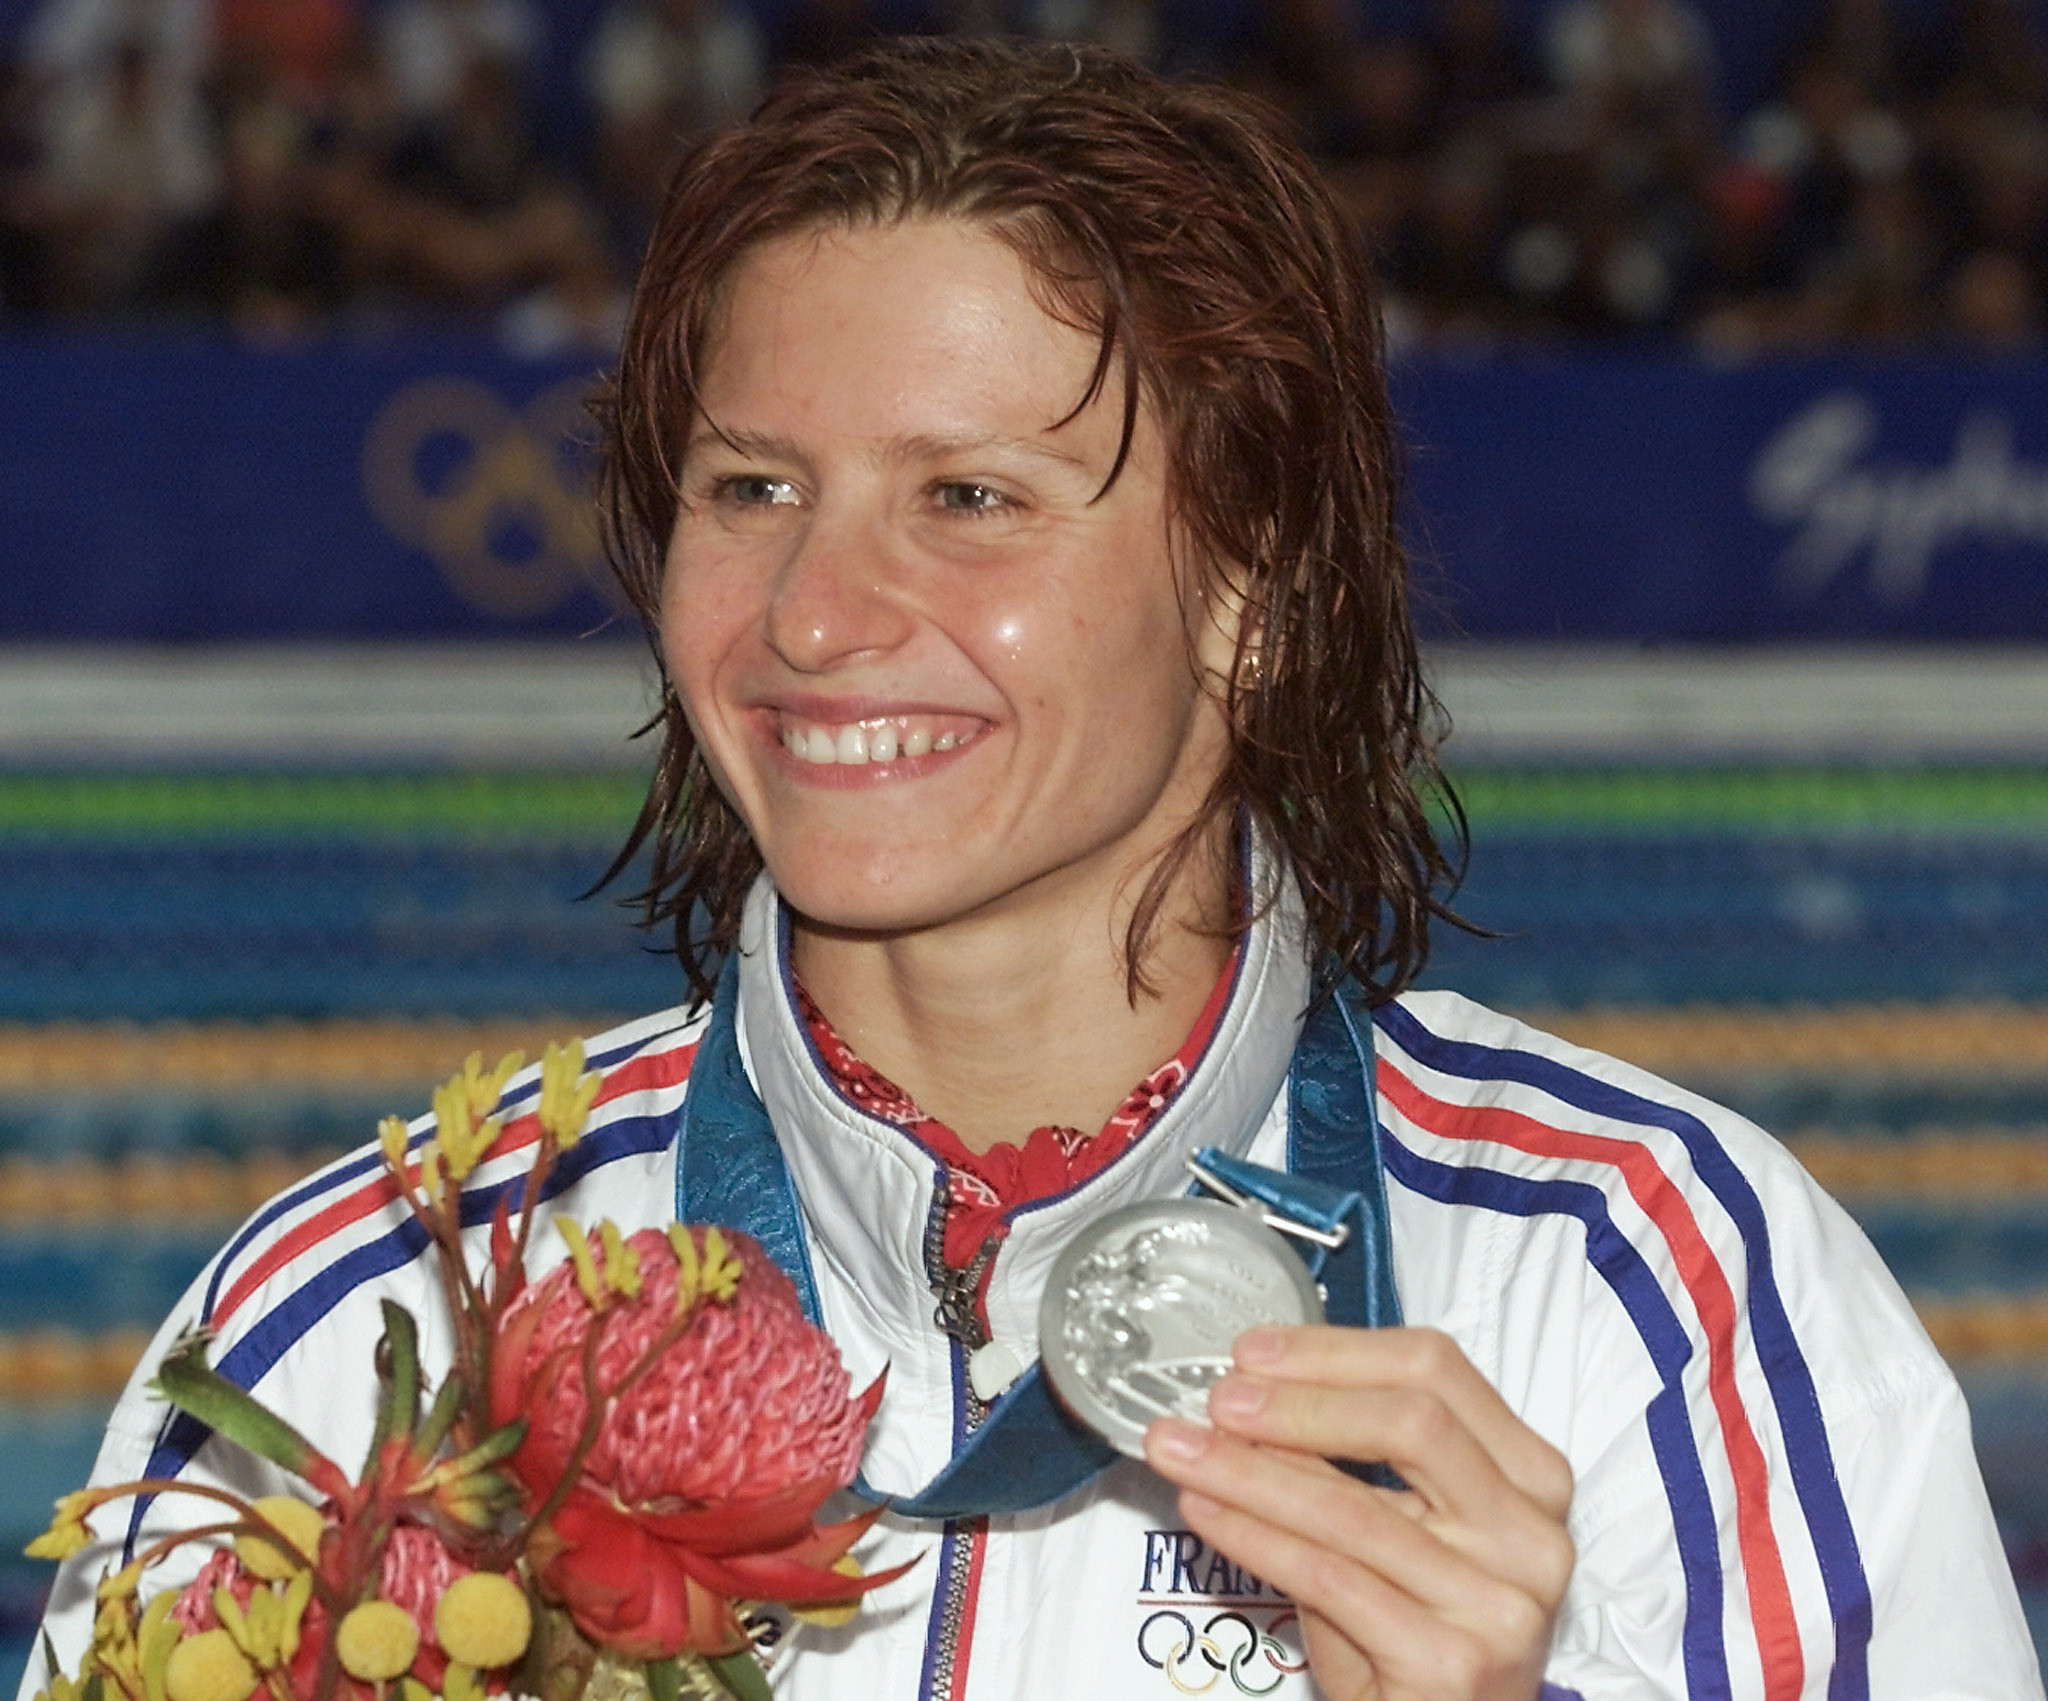 Roxana Maracineanu, who won a silver medal at Sydney 2000, will replace Flessel as French Sports Minister ©Getty Images